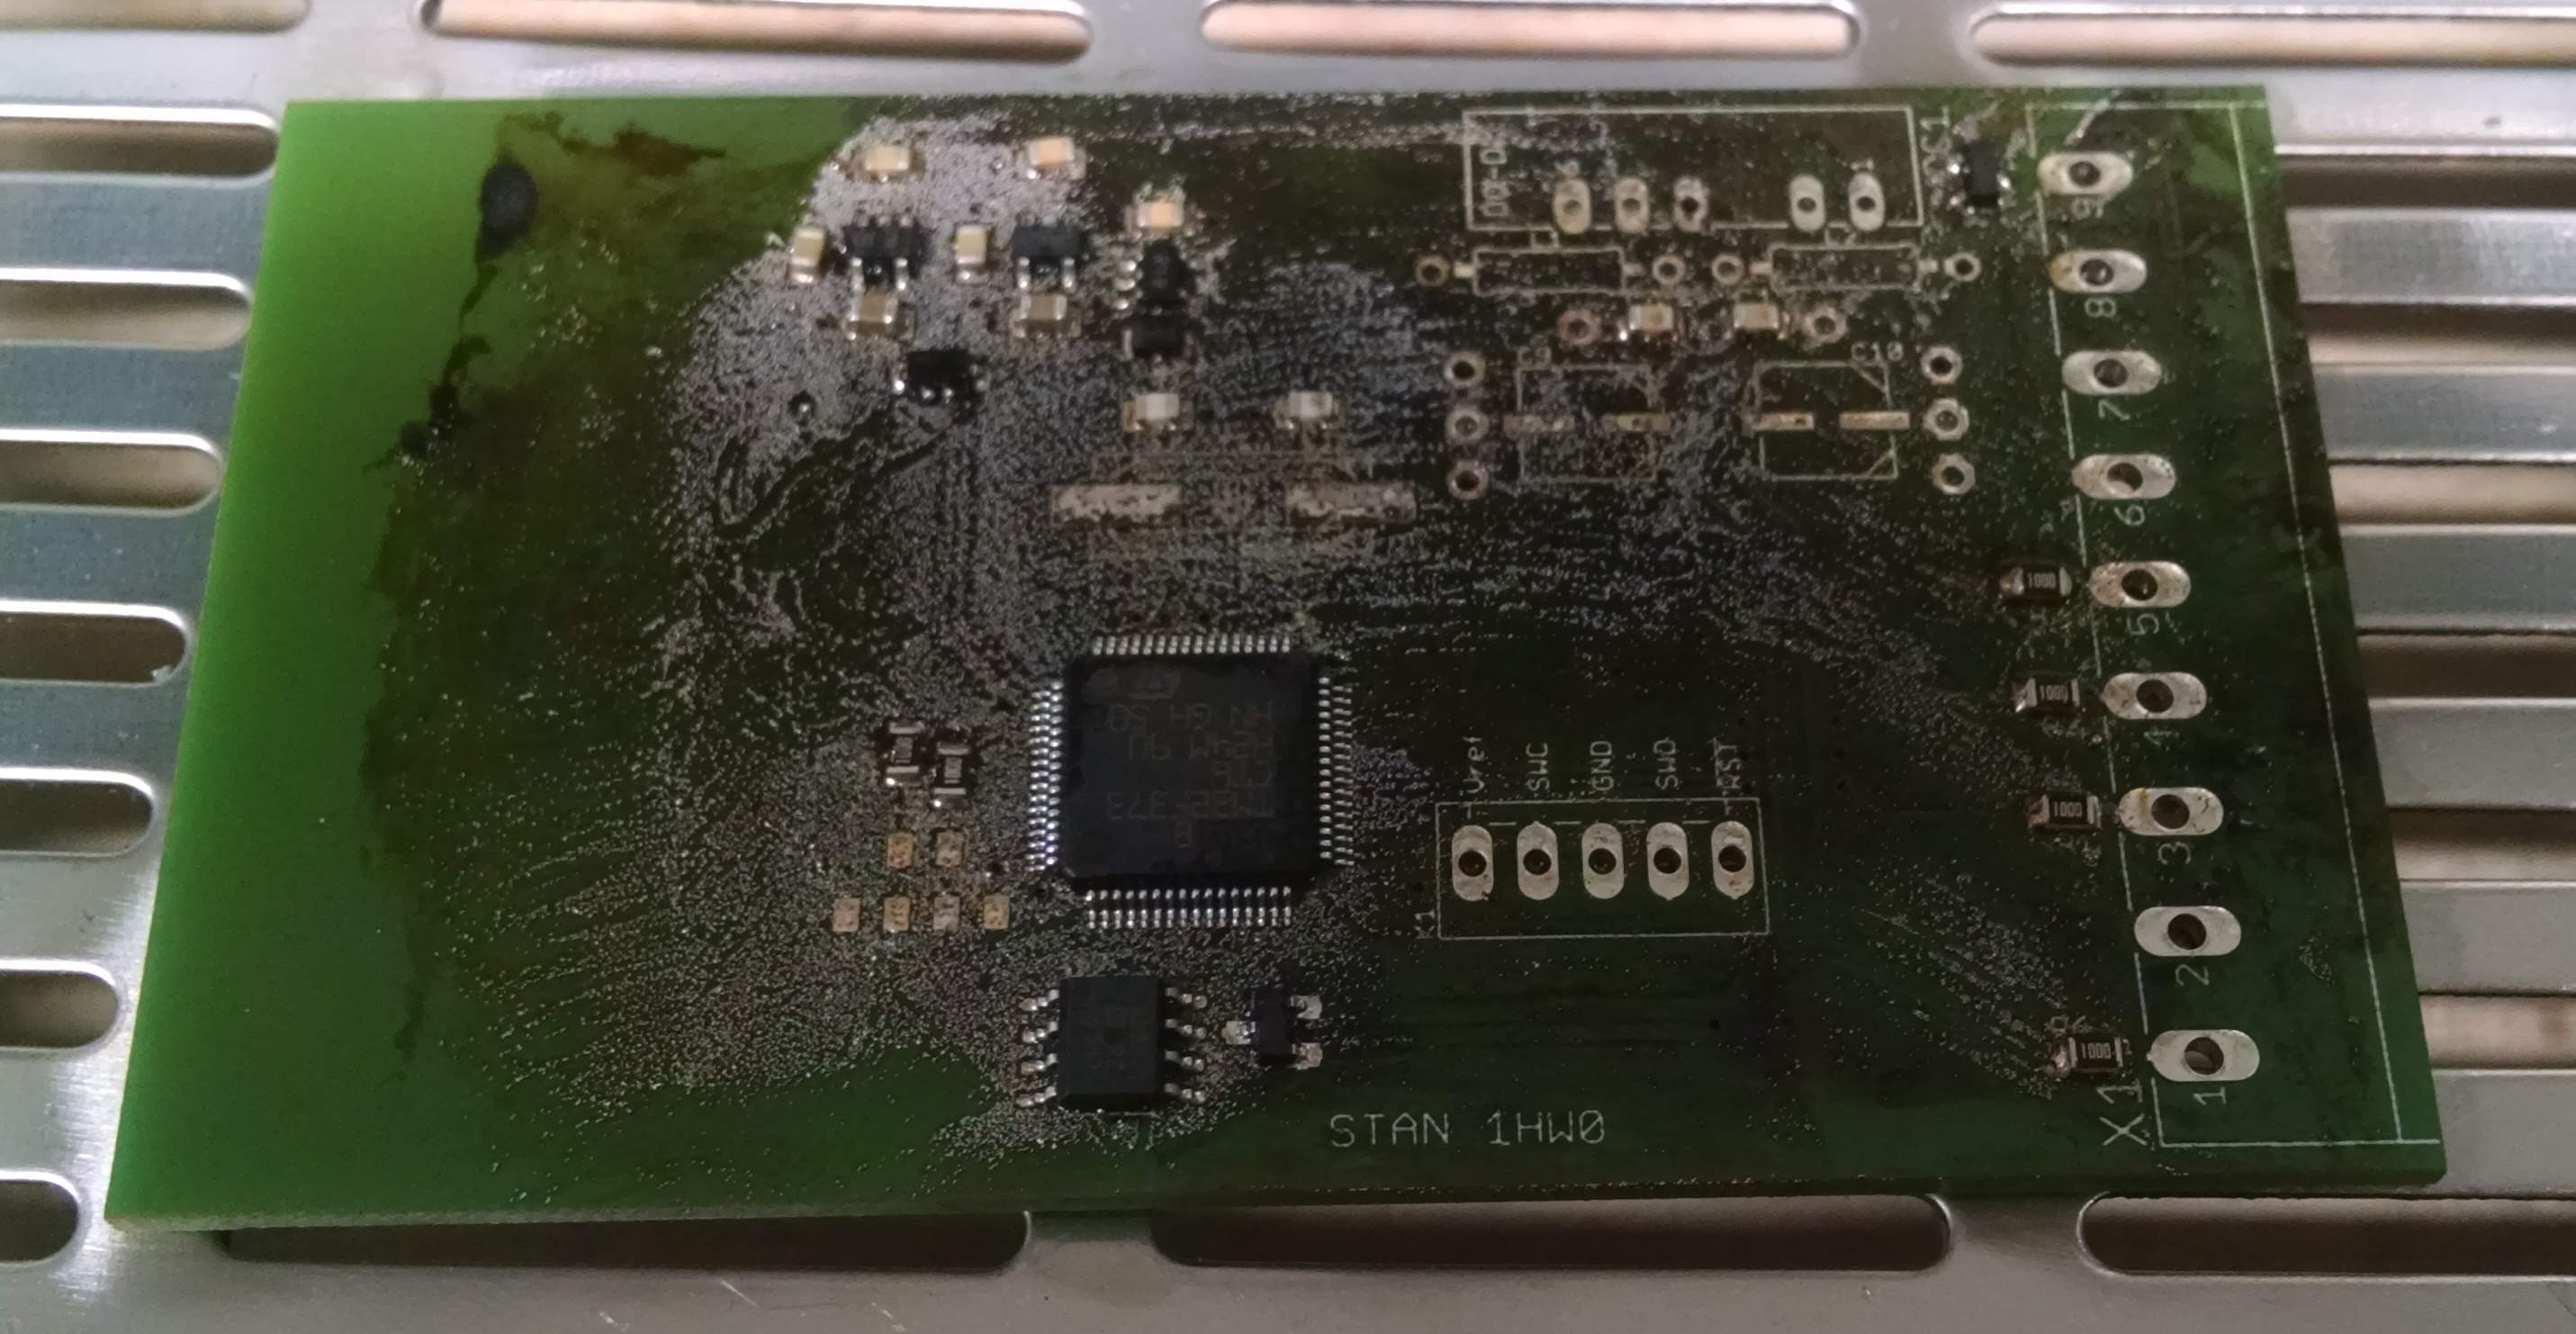 Solder paste wont be easily cleaned from PCB after reflow in oven